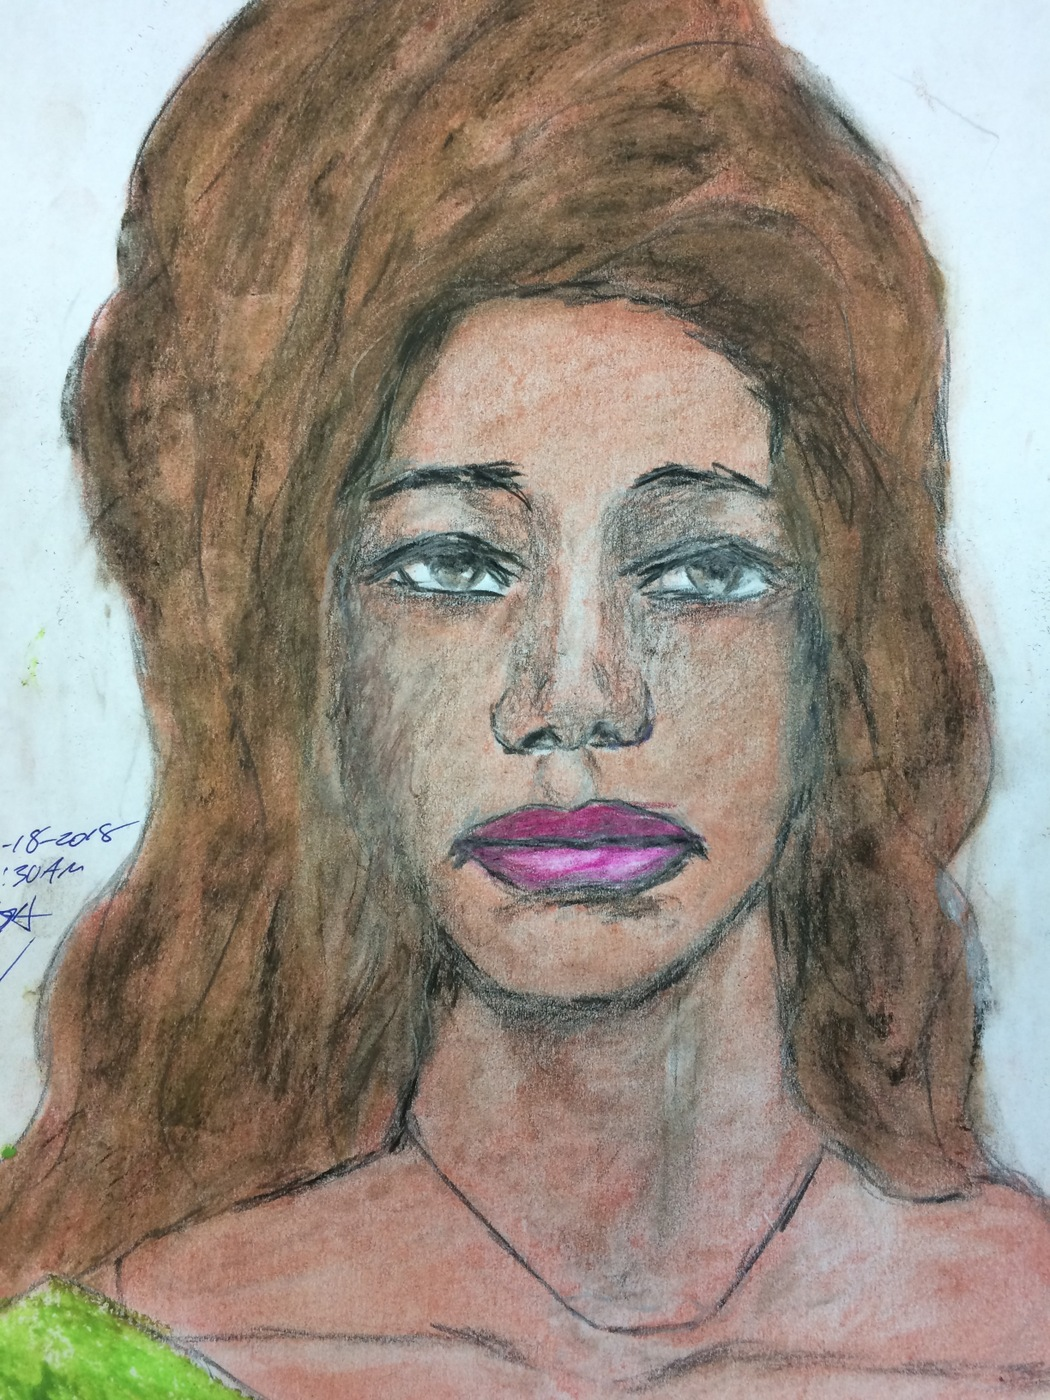 Samuel Little Drawing of Black Female Victim (Killed in 1993, Las Vegas)